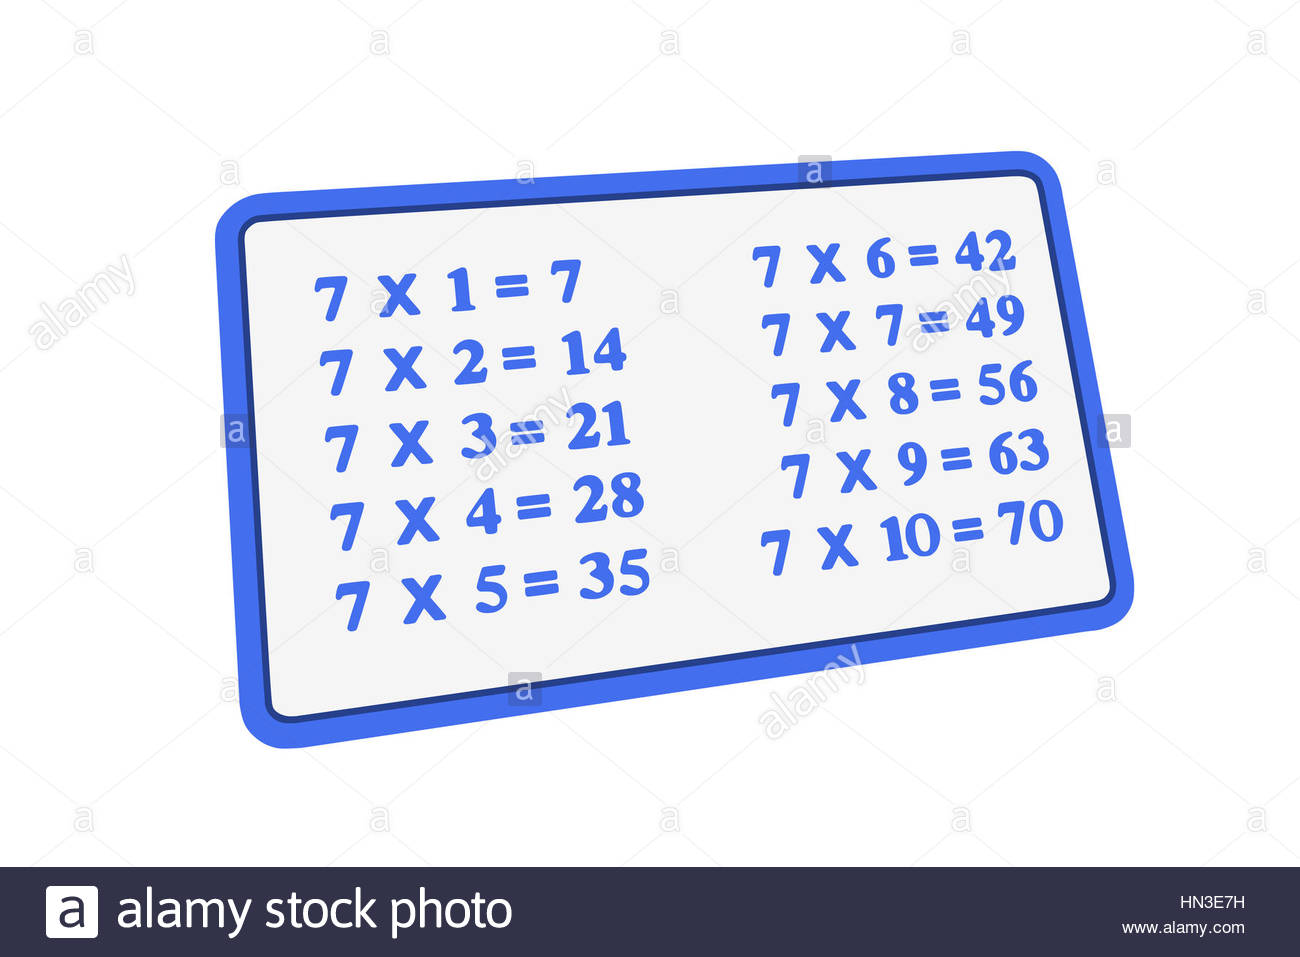 seven times table multiplication operation illustration